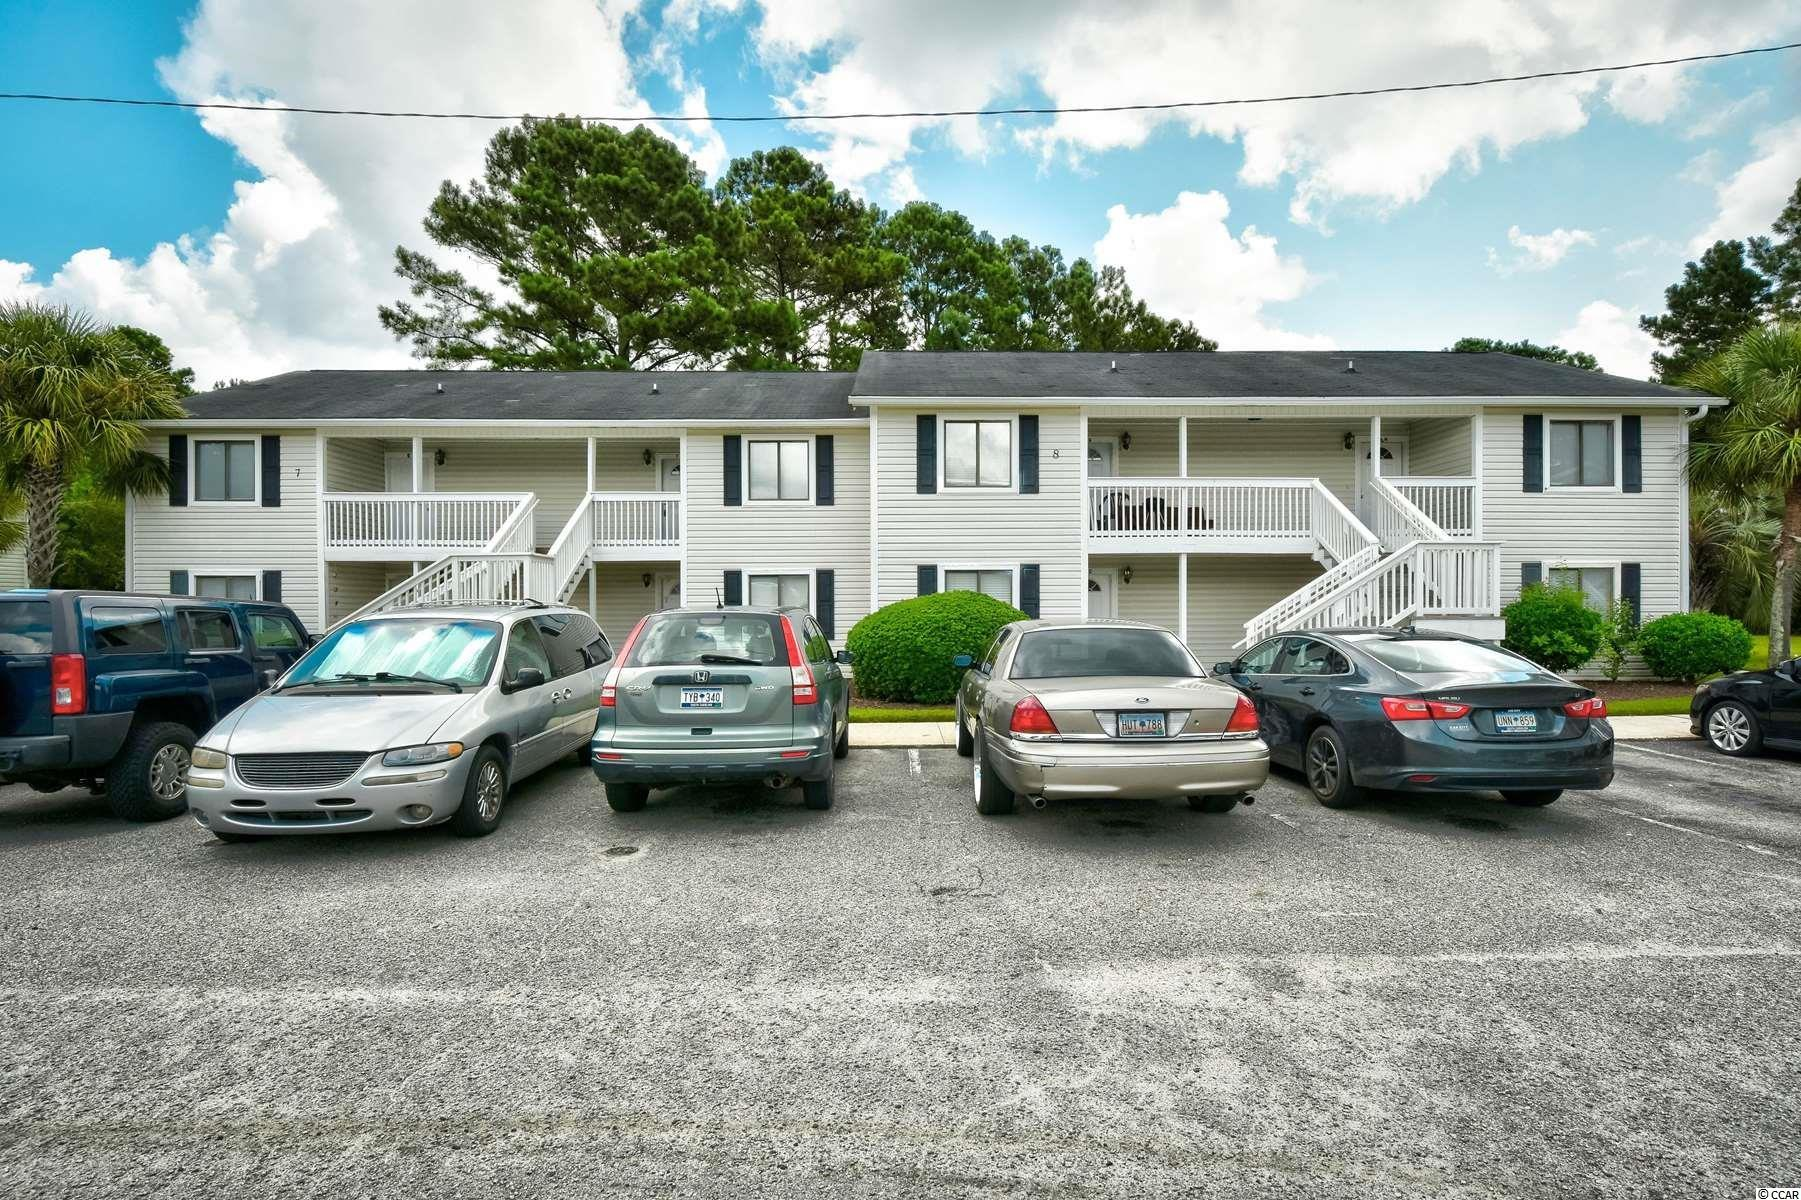 Don't miss this opportunity to own this 2 bedroom 2 bathroom first floor unit located in Coastal Villas, just walking distance to HGTC and Coastal Carolina University! This condo includes a kitchen equipped with all appliances, plenty of cabinets and counter space, and a breakfast bar. Each bedroom offers a ceiling fan, plenty of closet space, and easy access to its own bathroom.  Coastal Villas amenities include an outdoor pool and an onsite laundromat. Only minutes to downtown Conway and the Riverwalk, near shopping, dining, golf, and less than 12 miles from the beach. Schedule your showing today!